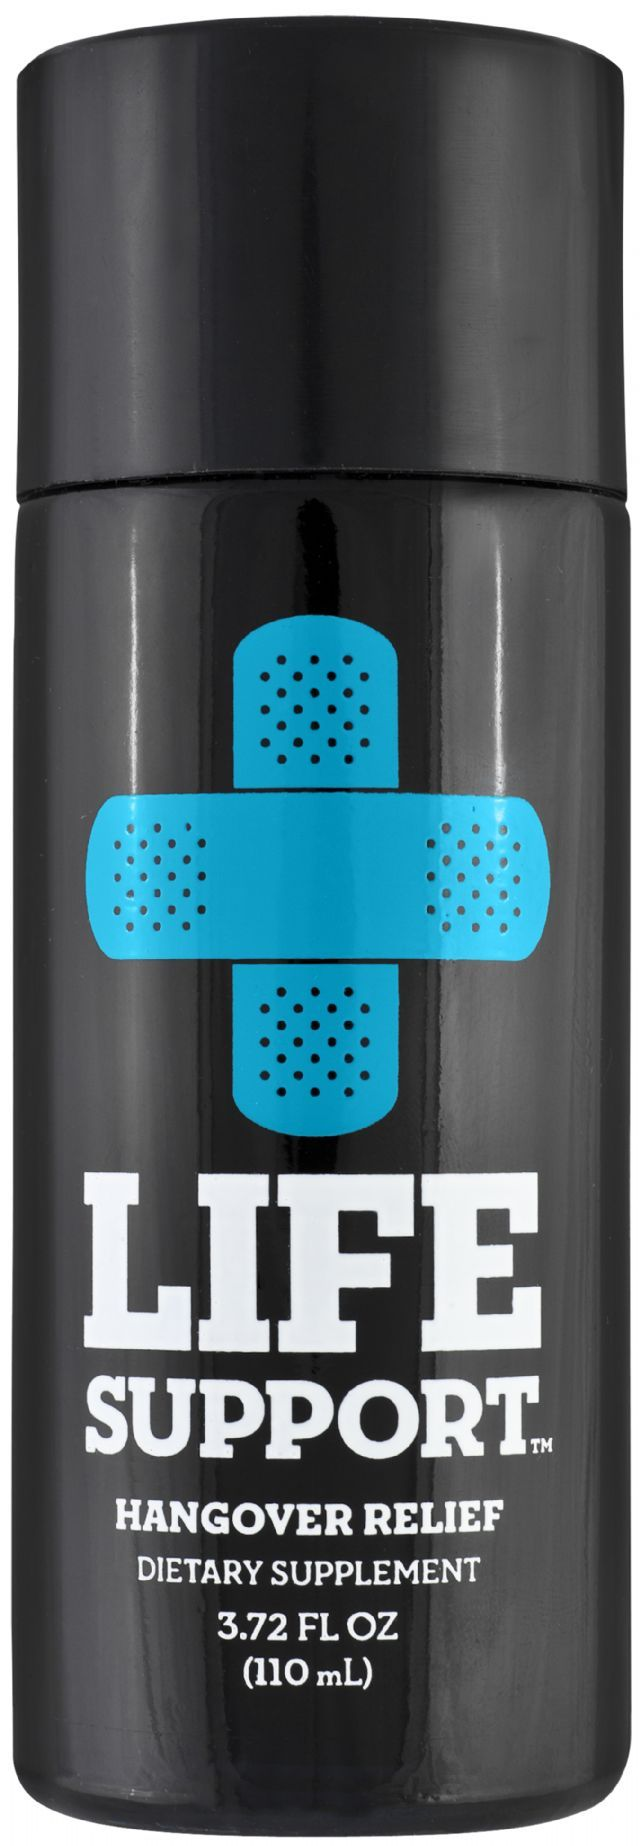 Life Support: Life Support Hangover Relief